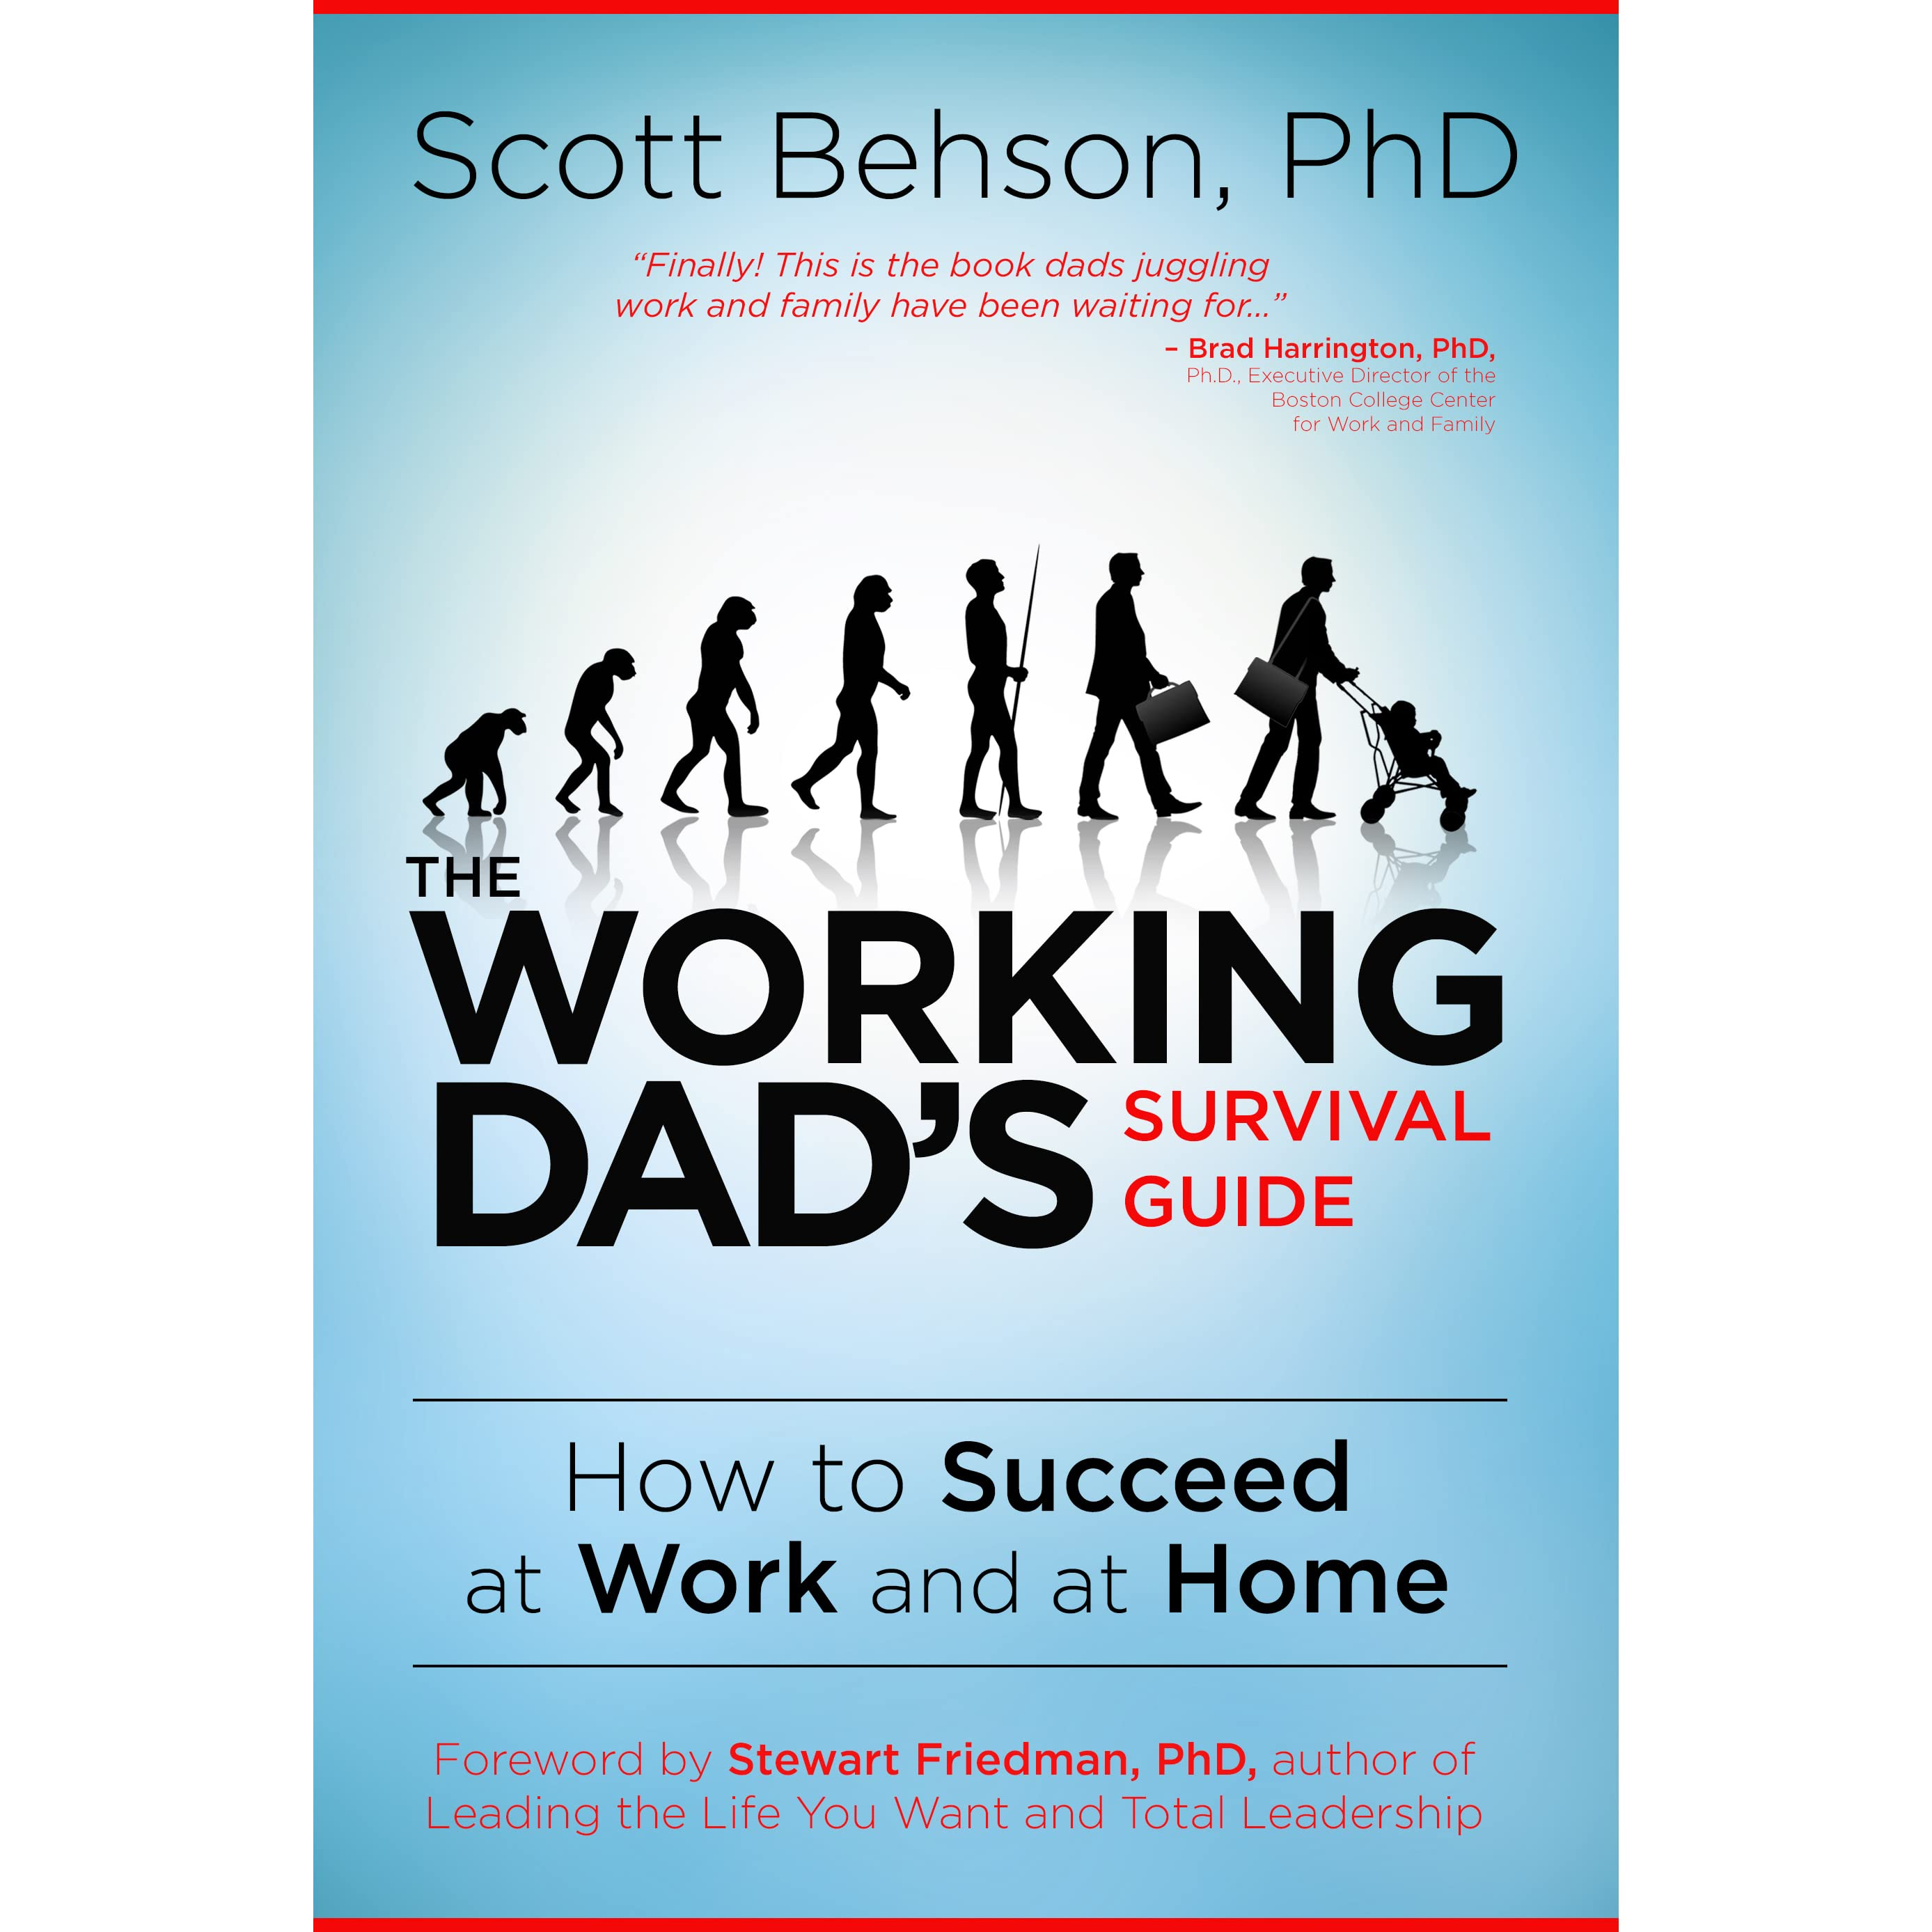 the working dad s survival guide how to succeed at work and at the working dad s survival guide how to succeed at work and at home by scott behson reviews discussion bookclubs lists